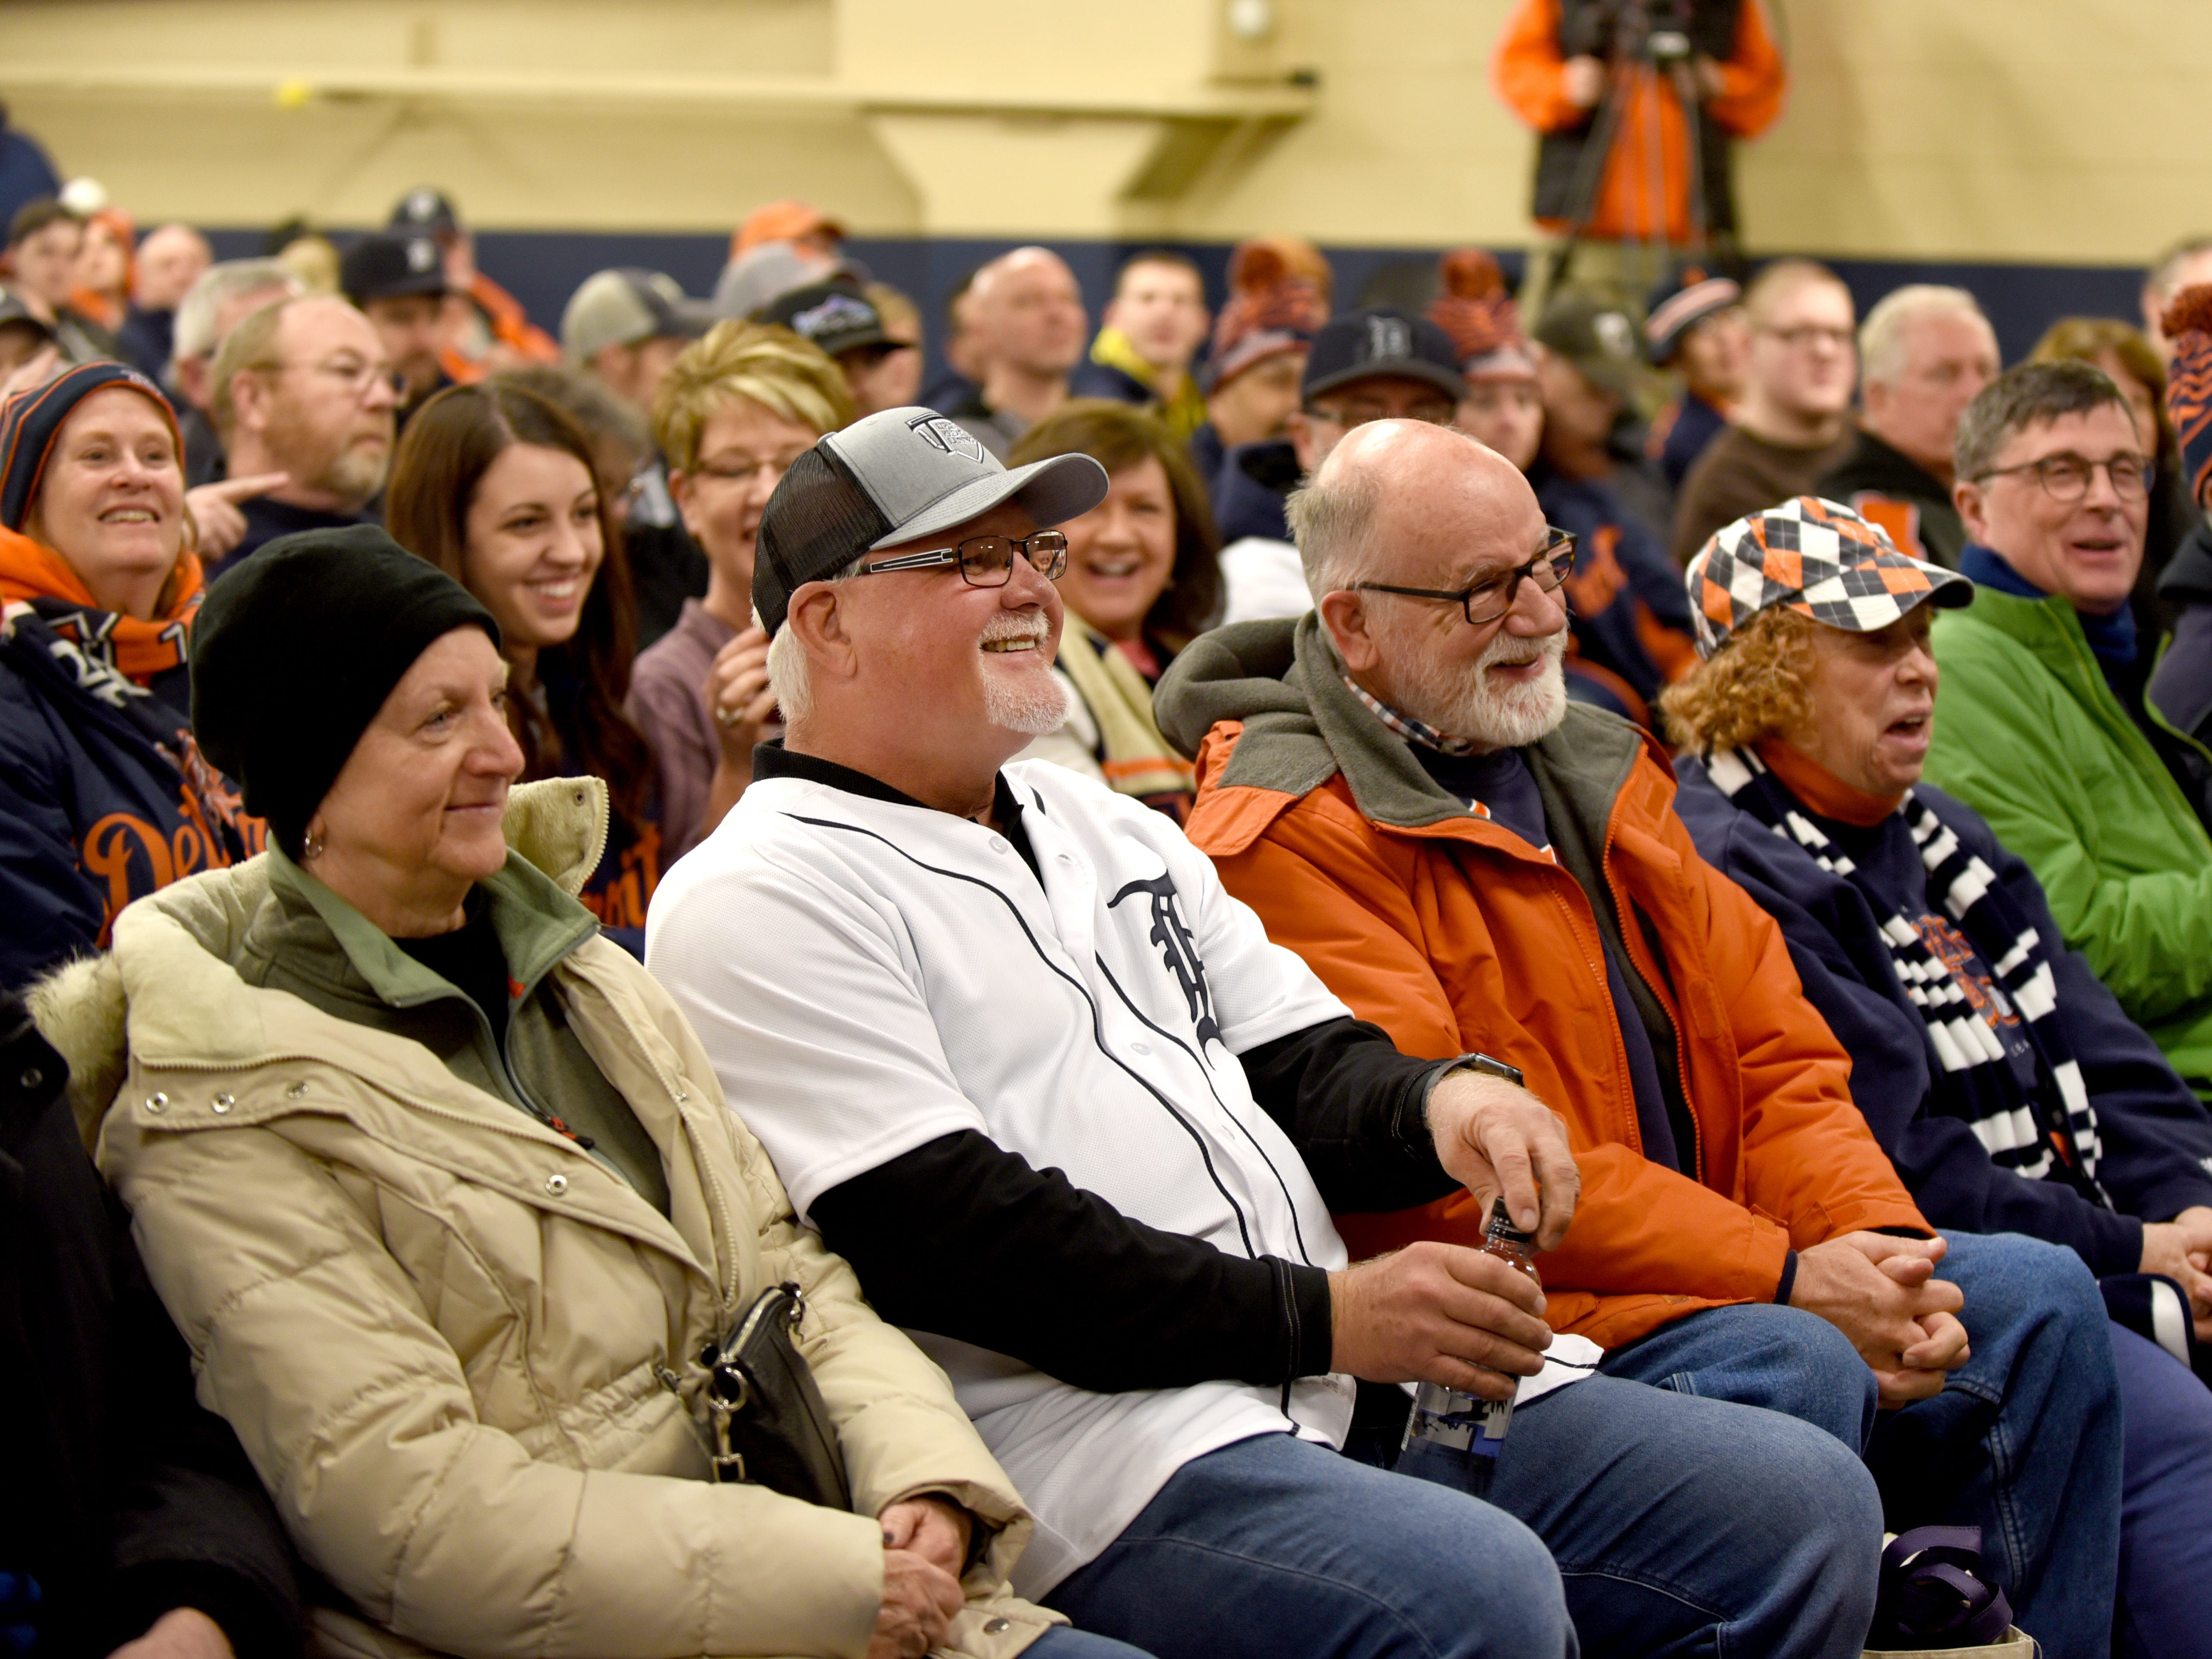 Detroit Tigers head coach Ron Gardenhire sits in the crowd for a moment before taking the main stage for a coaches question and answer session at TigerFest 2019.